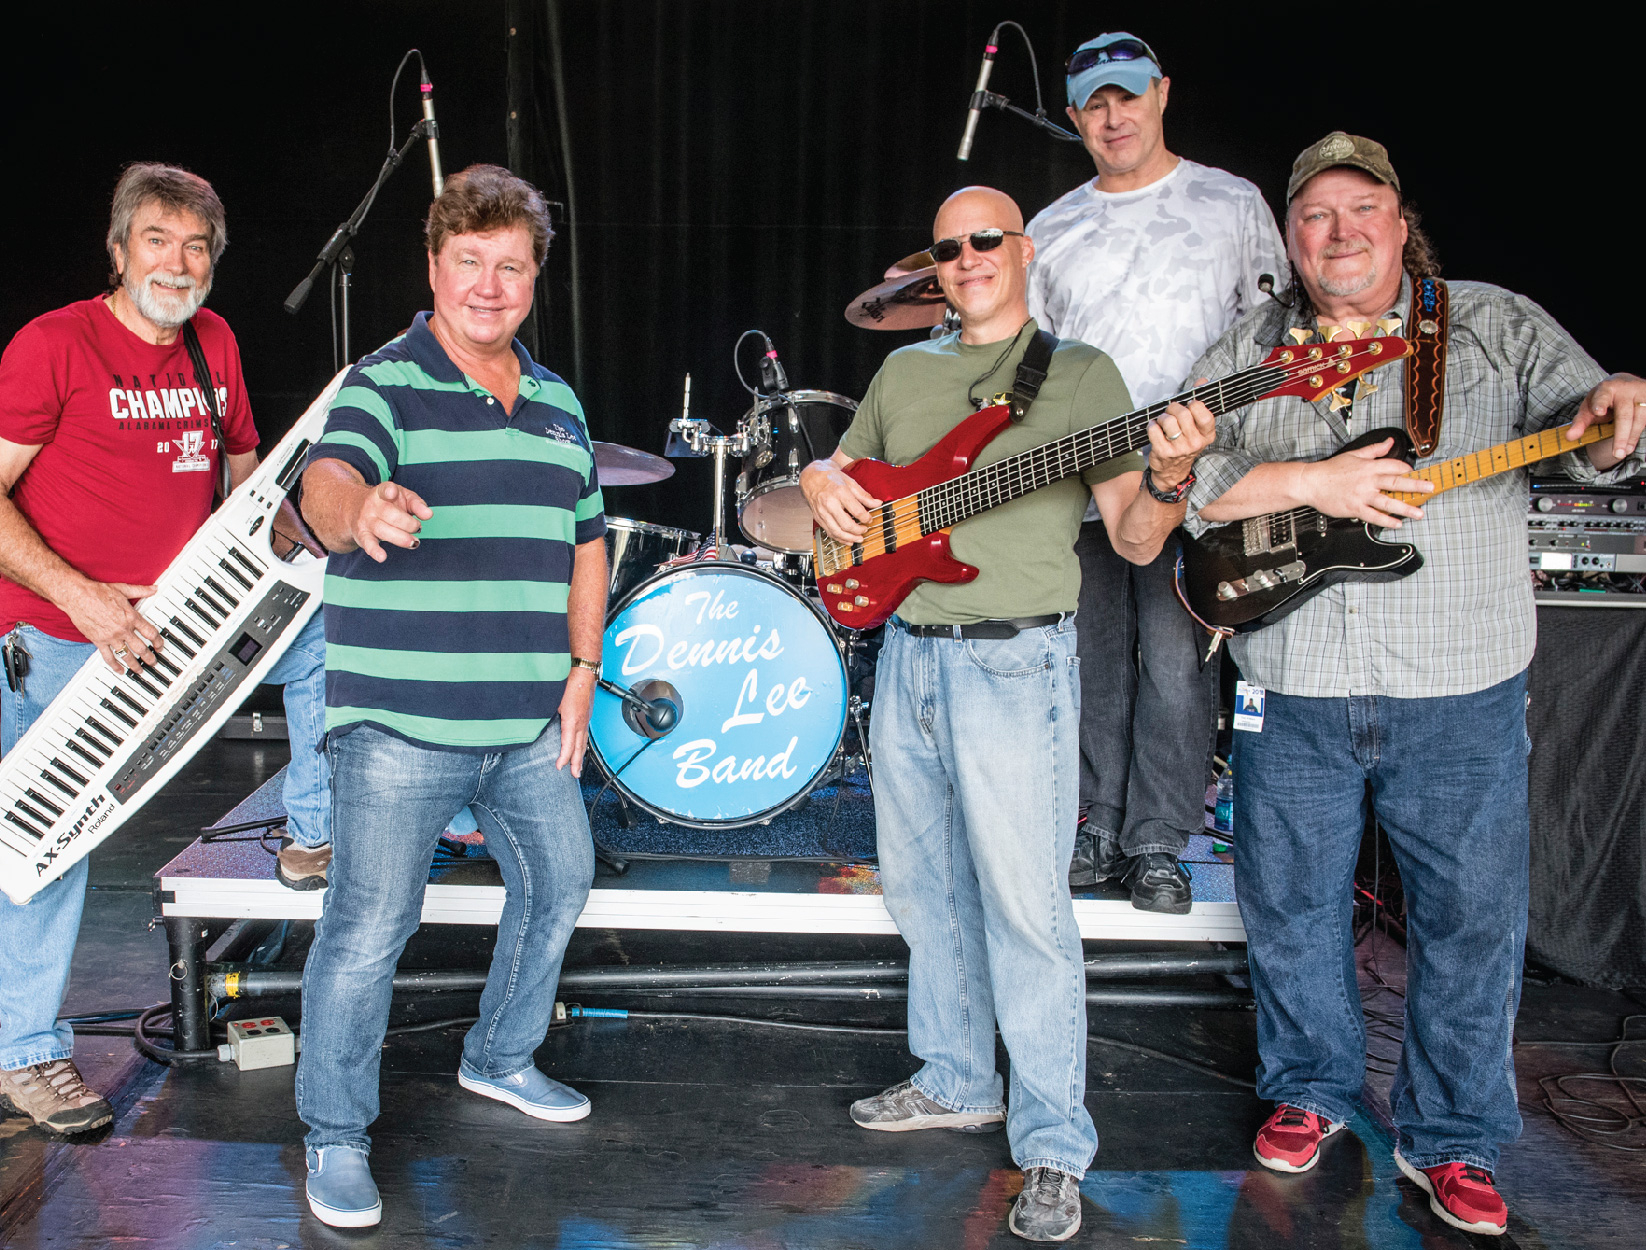 Dennis Lee Band – Florida State Fair Intended For South Florida Fairgrounds Event Schedule February 2020